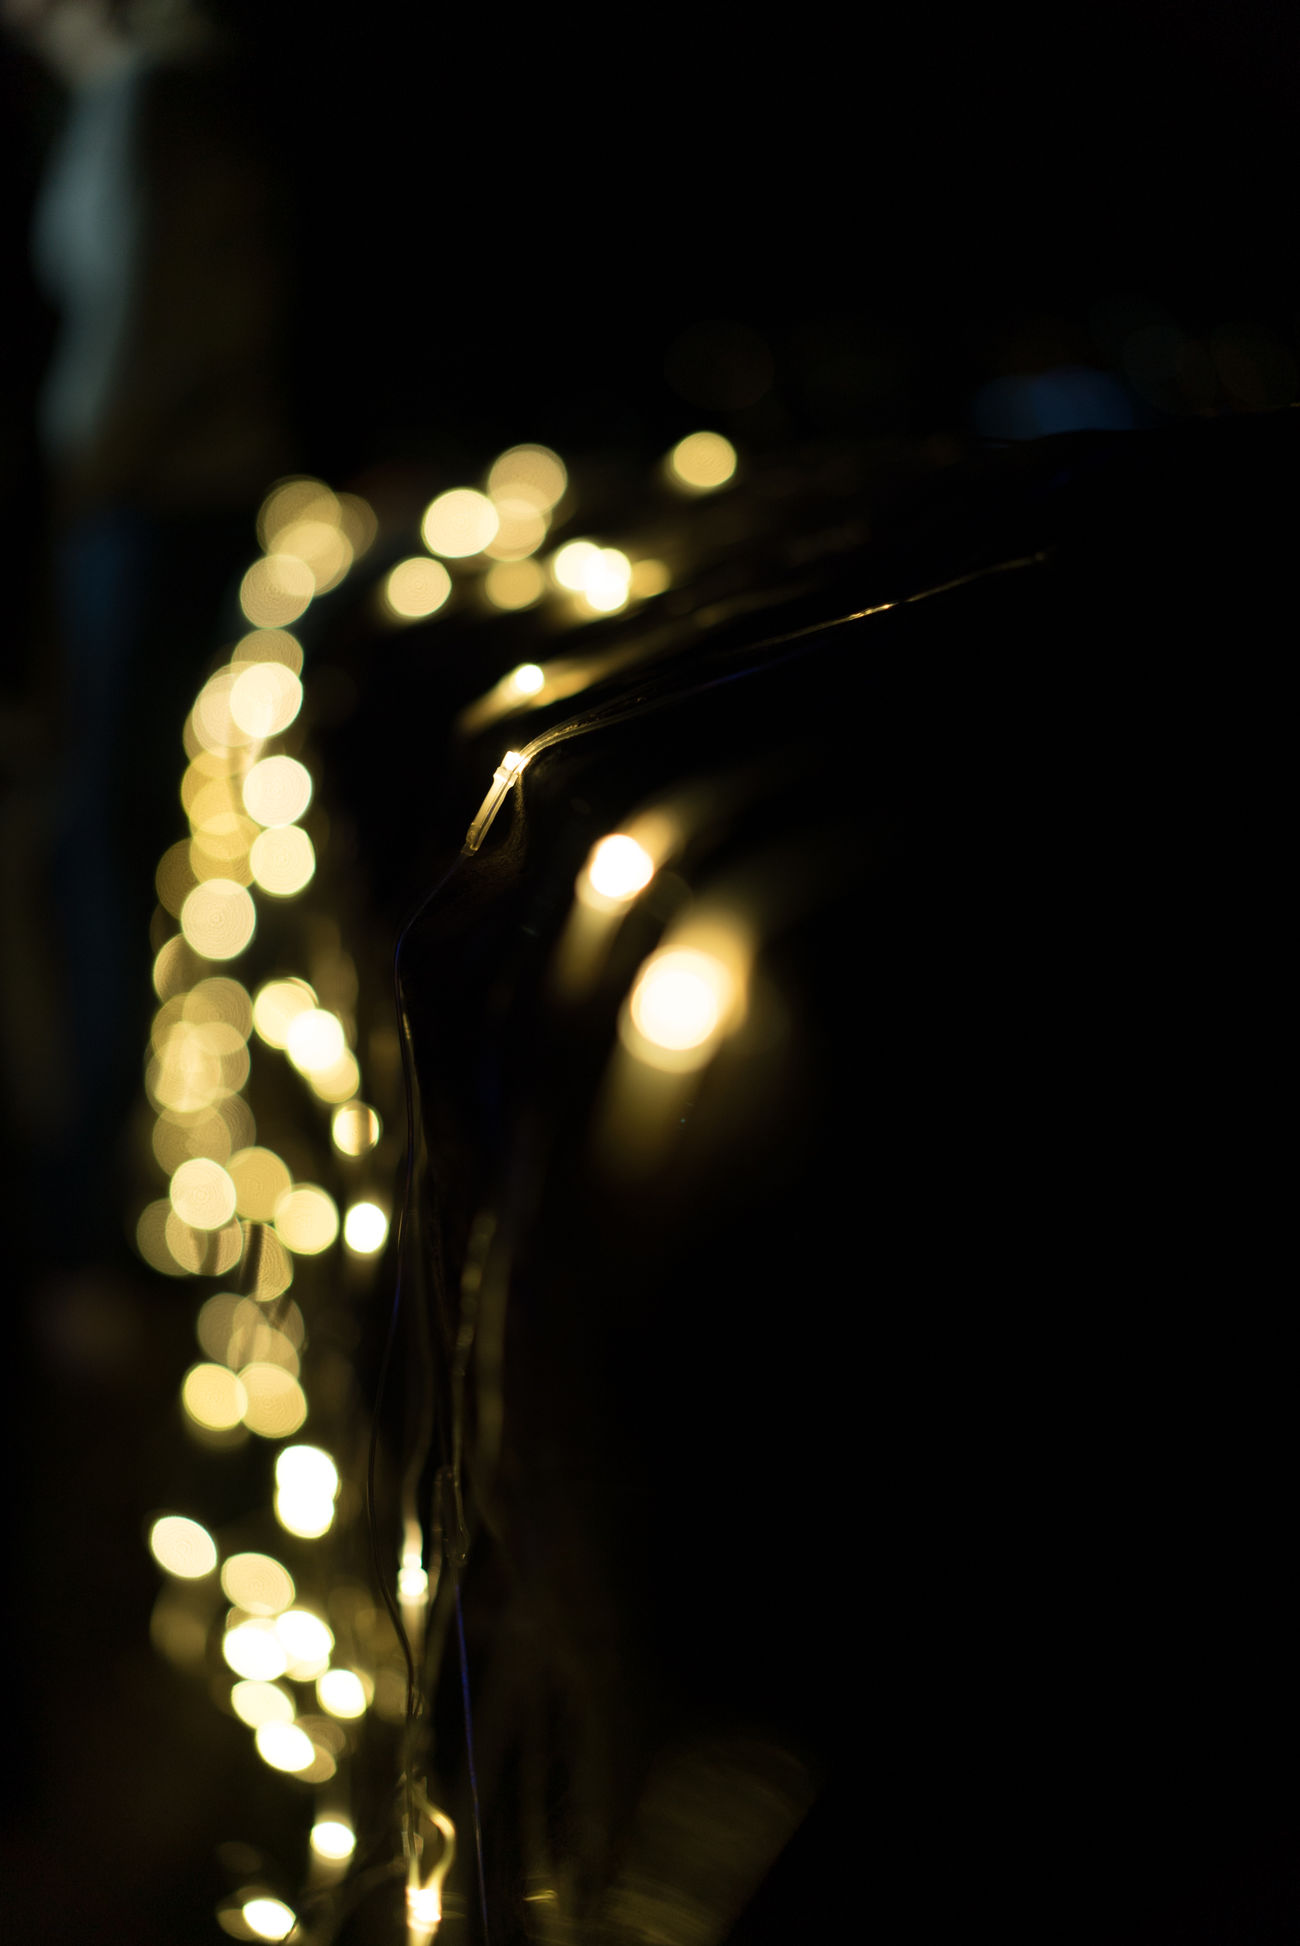 Black Background Close-up Electric Light Electricity  Filament Glowing Gold Colored Illuminated Indoors  Light Bulb Lighting Equipment Night No People